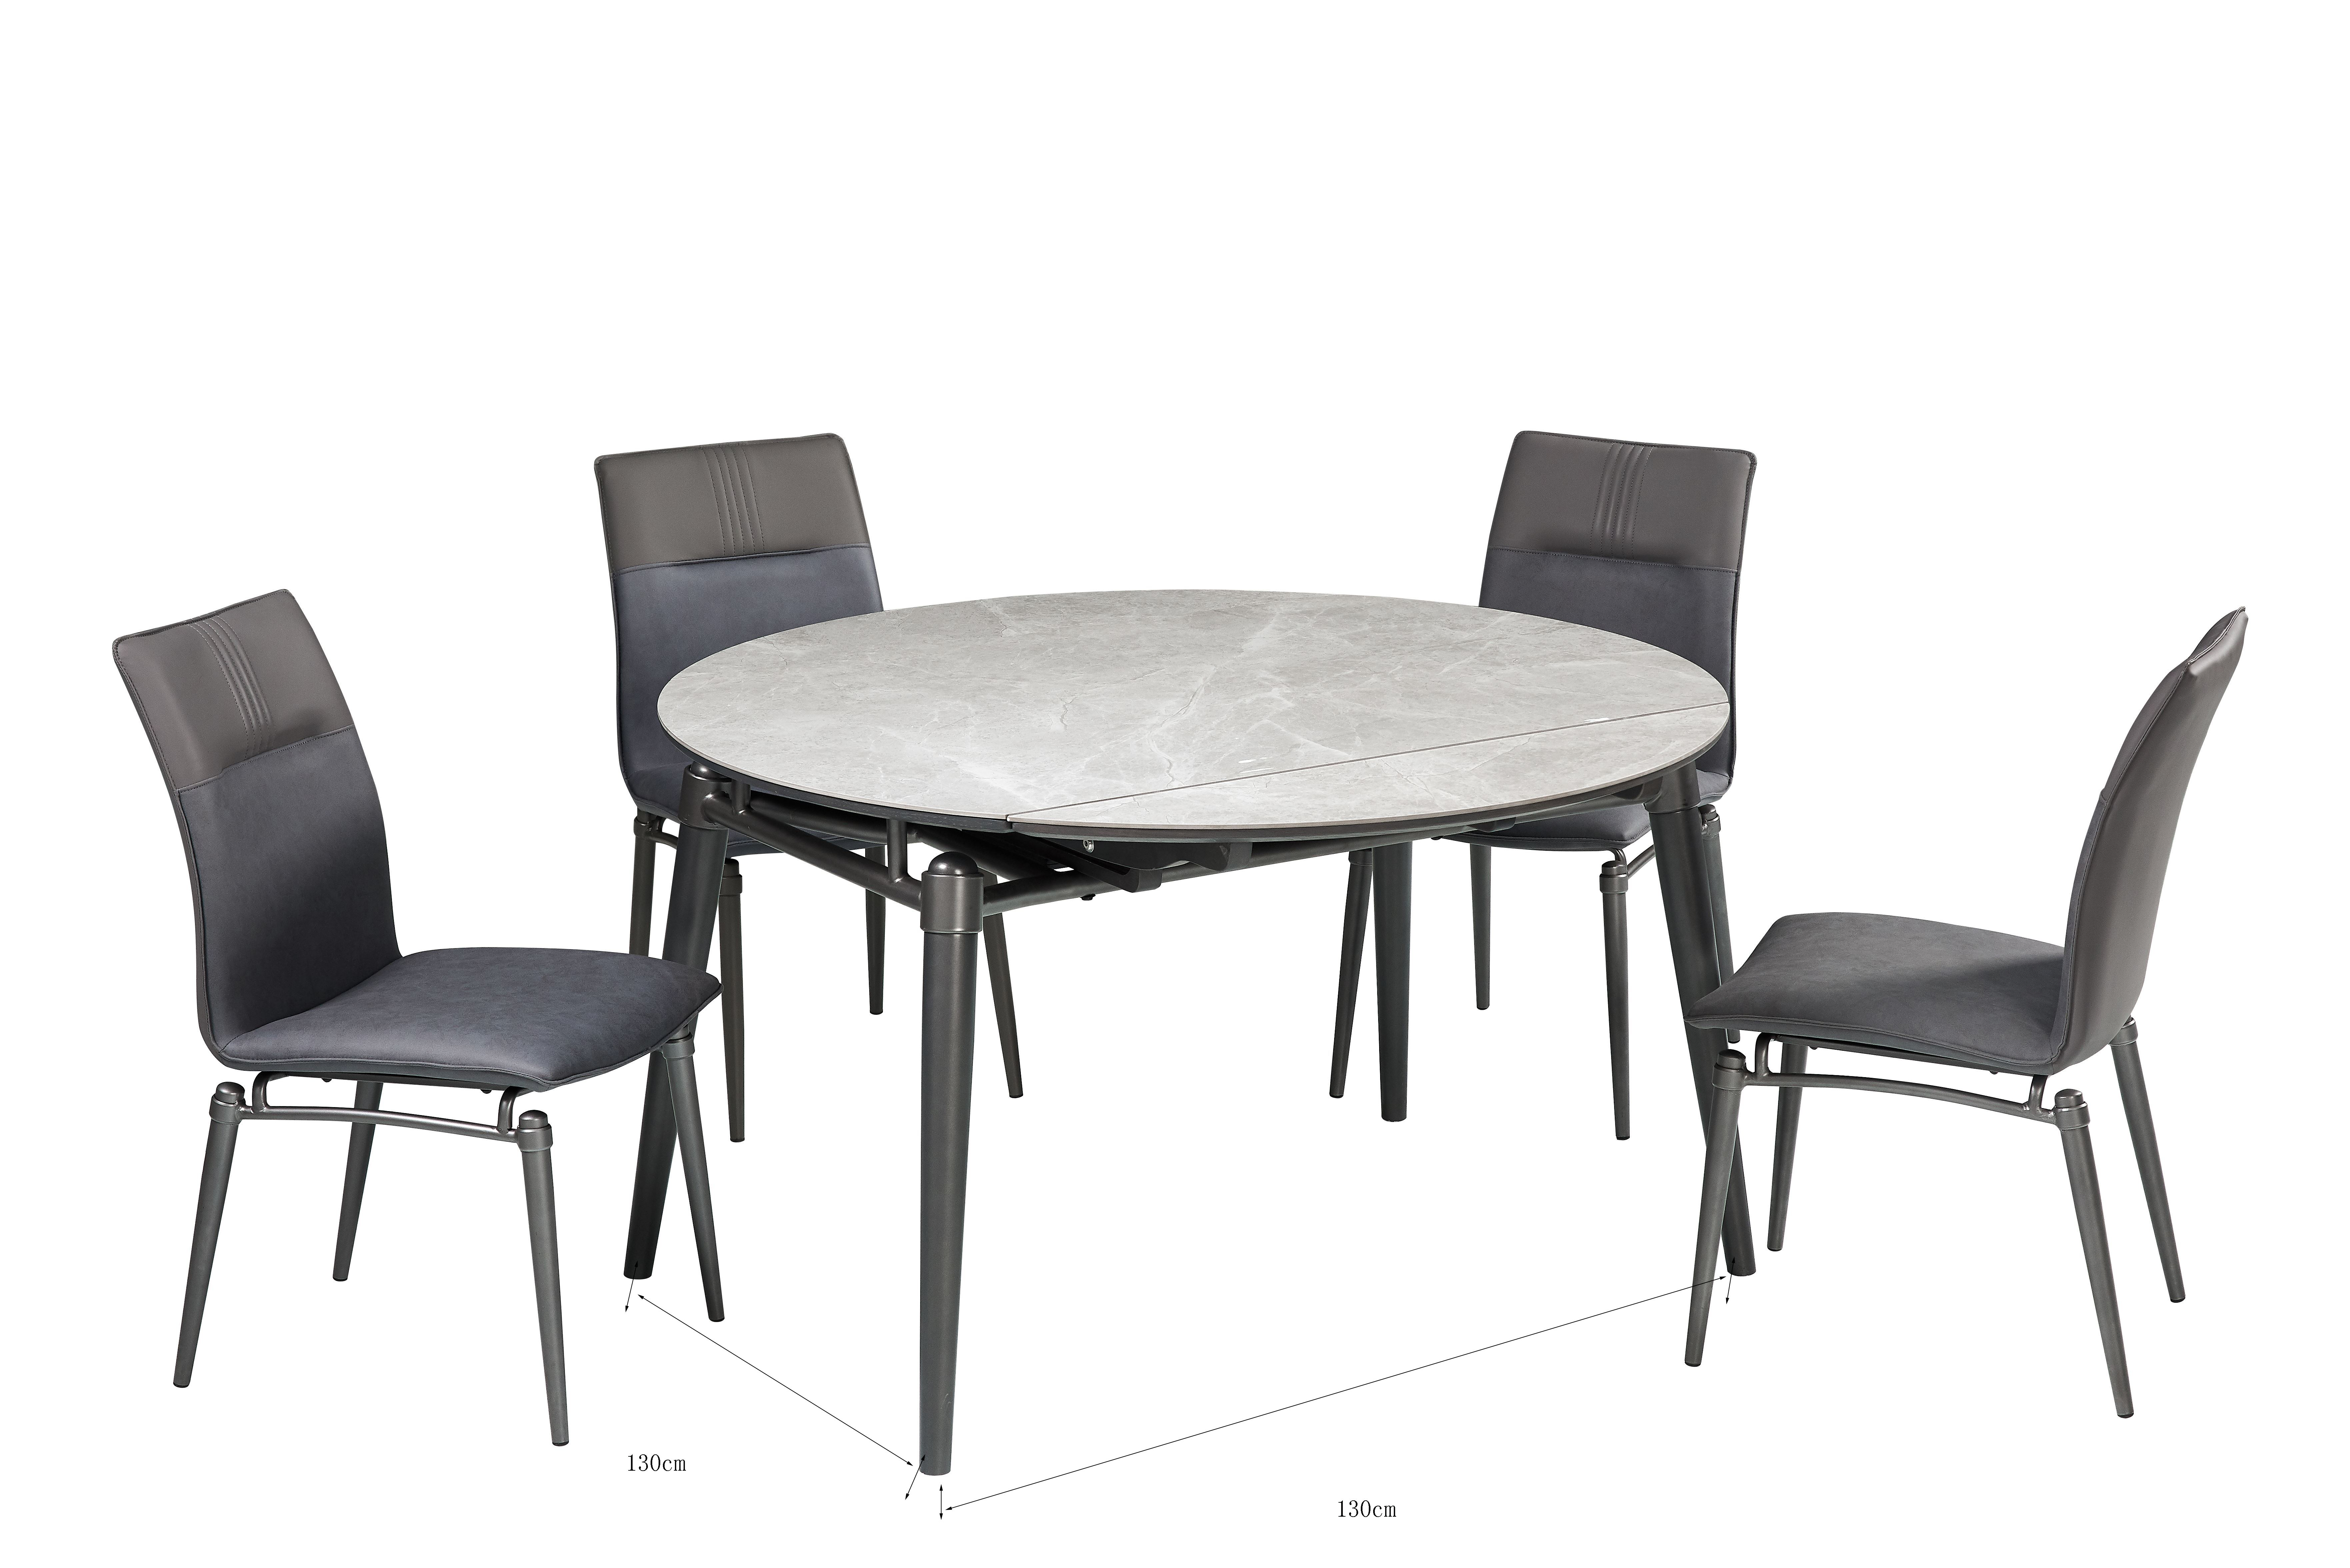 Table and chairs modern metal leg foldable table sintered top competitive price hot sale restaurant dining set